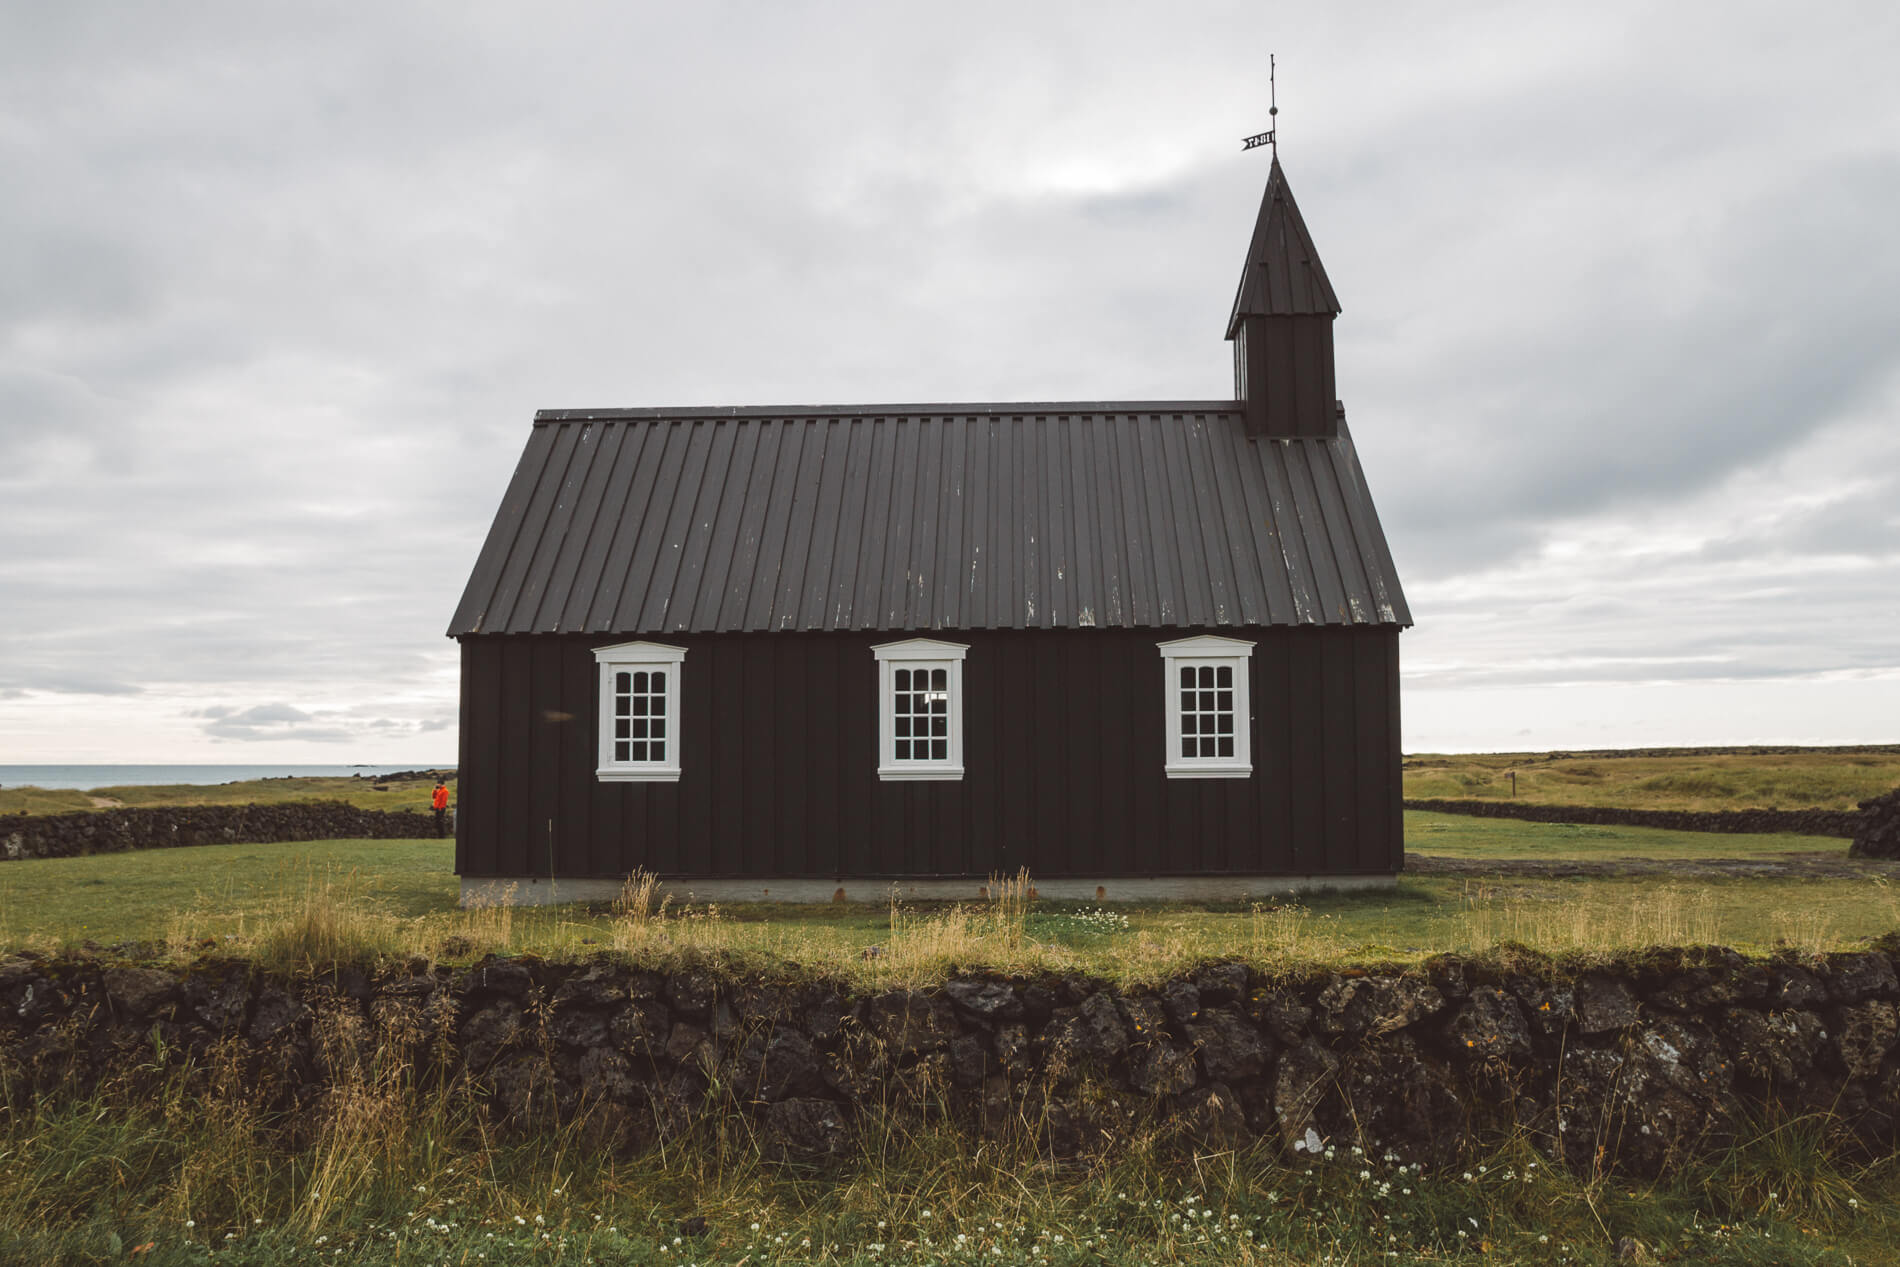 west iceland, iceland itinerary, off the beaten path iceland, budir black church